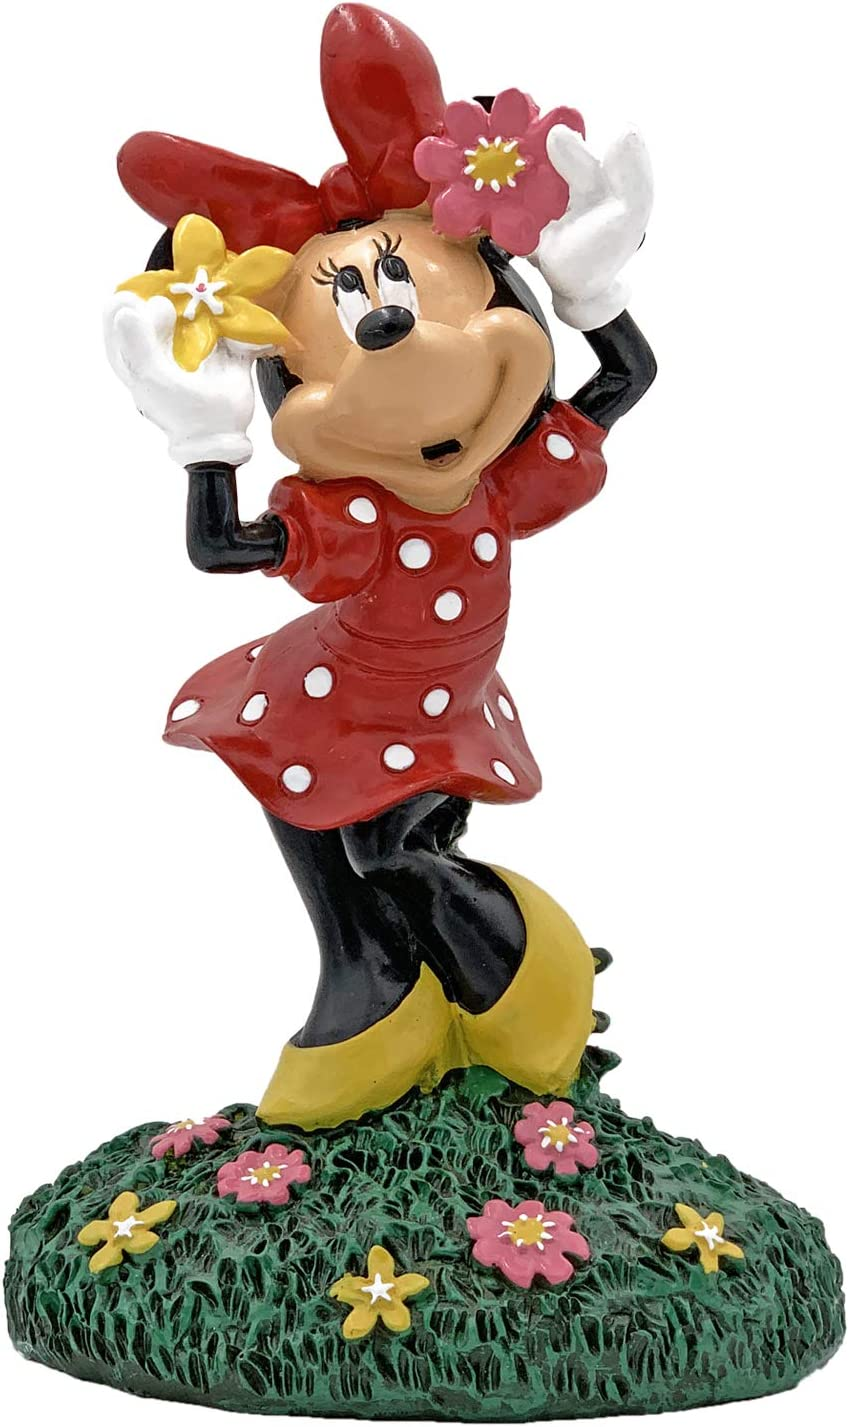 The Galway Company Oh Toodles! Minnie is Holding Flowers on her Head, Waiting for her Mickey. Outdoor Garden Statue, 8 Inches Tall by 6 inches Wide. Hand Painted, Official Disney Licensed.